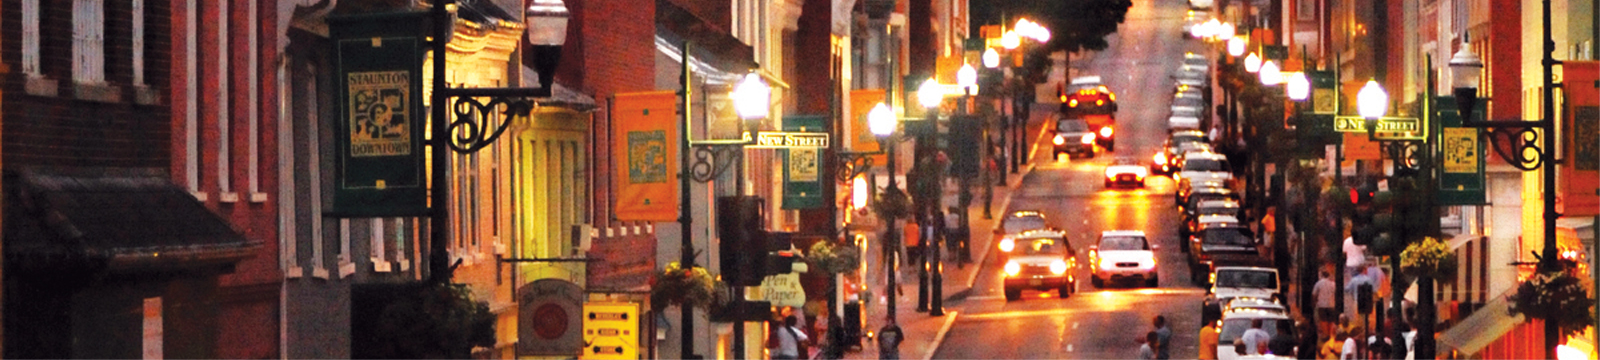 48-Hours of Romance in Staunton